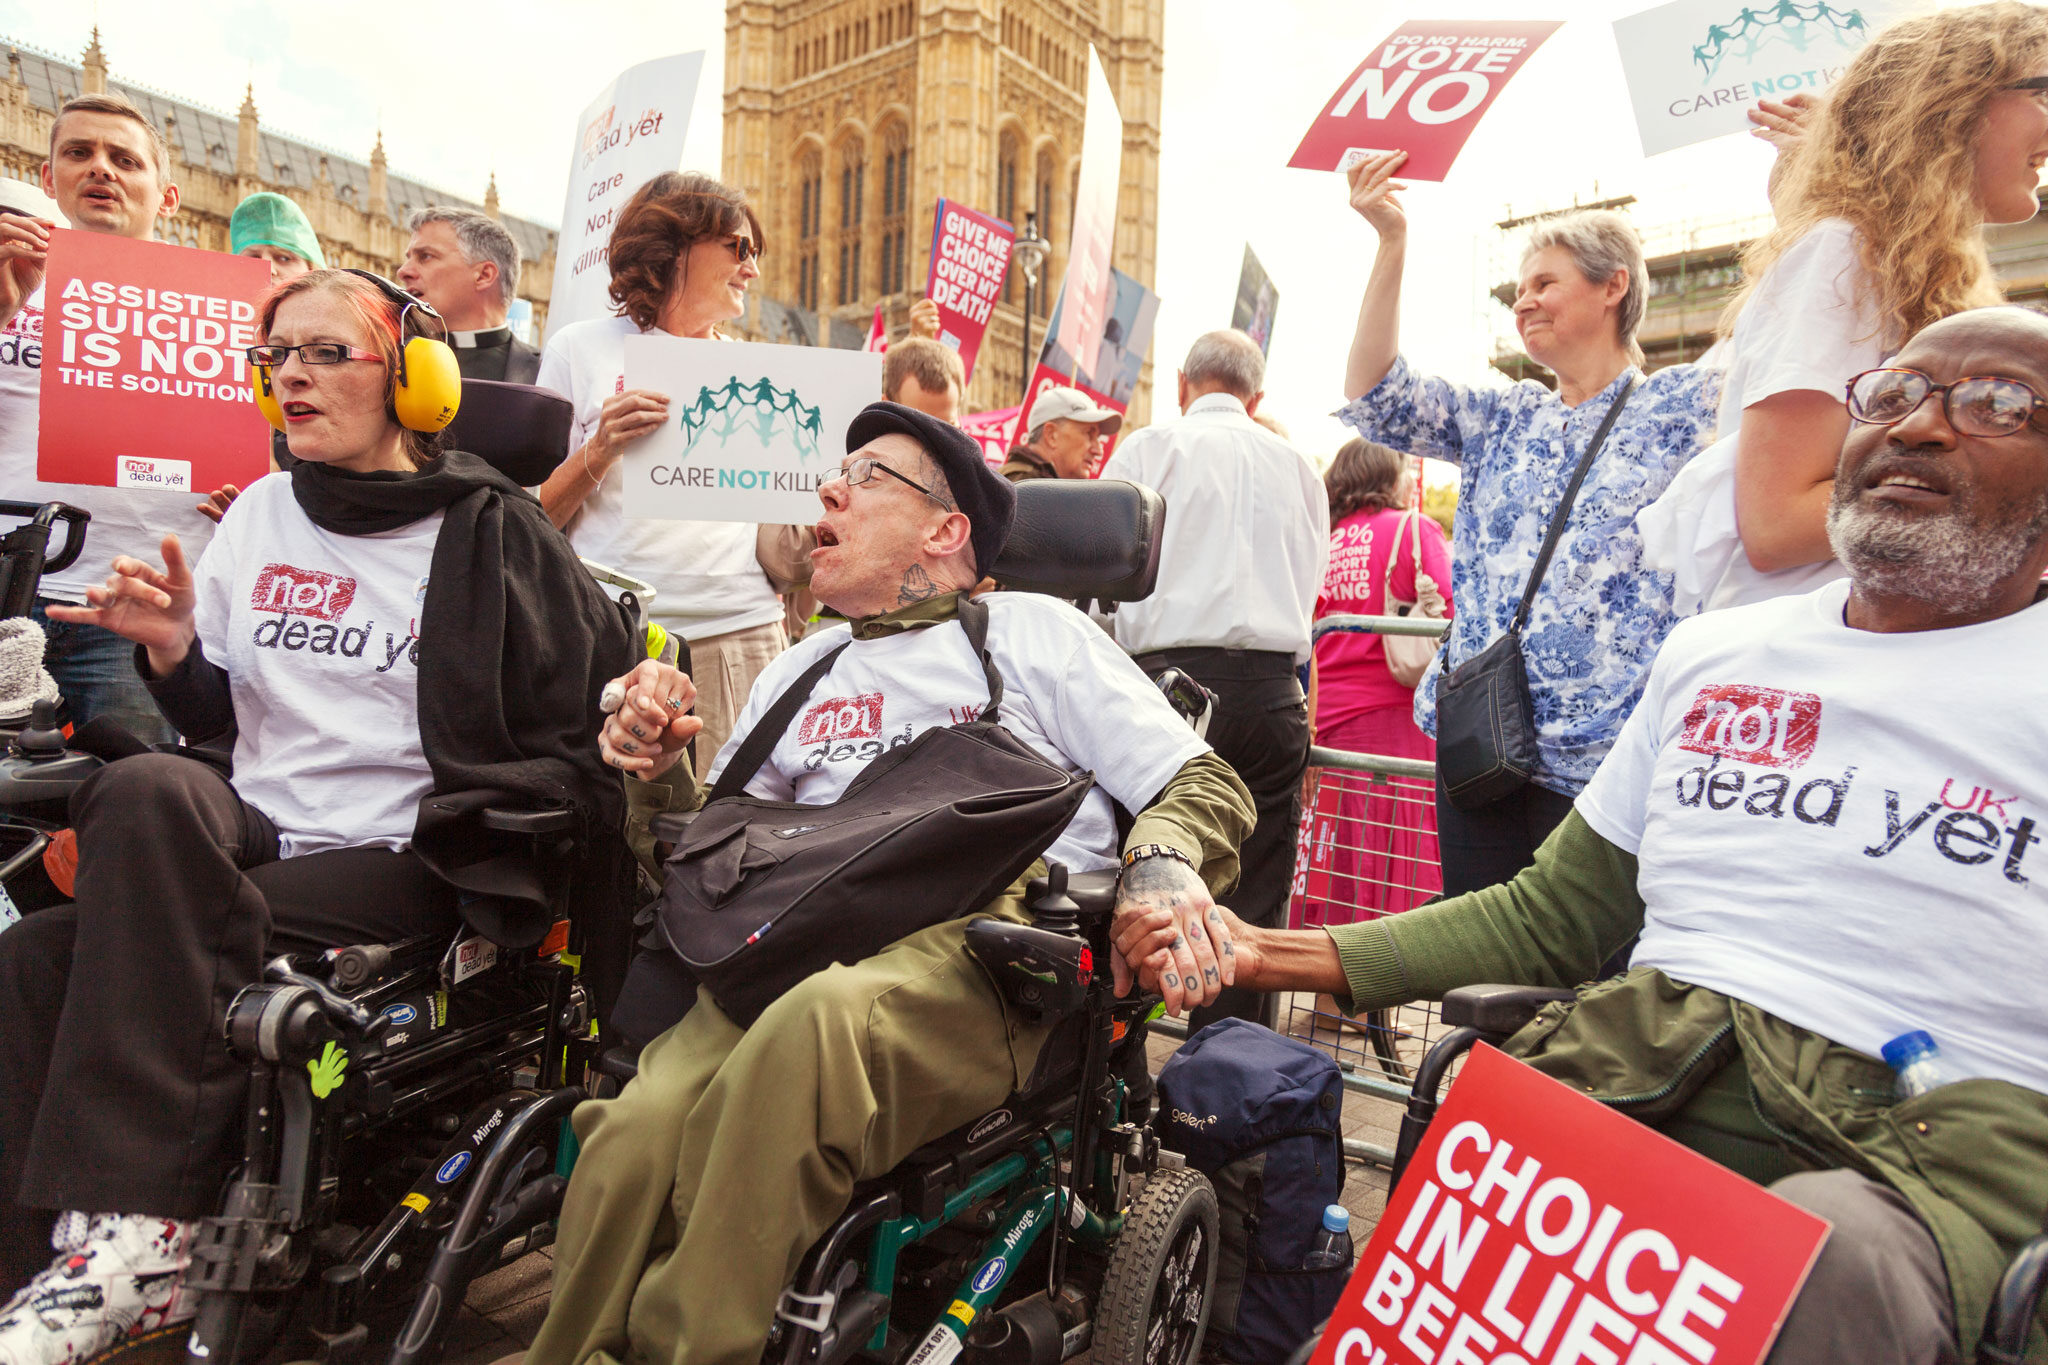 Activists for Not Dead Yet UK cheer during a rally of support for disability rights.